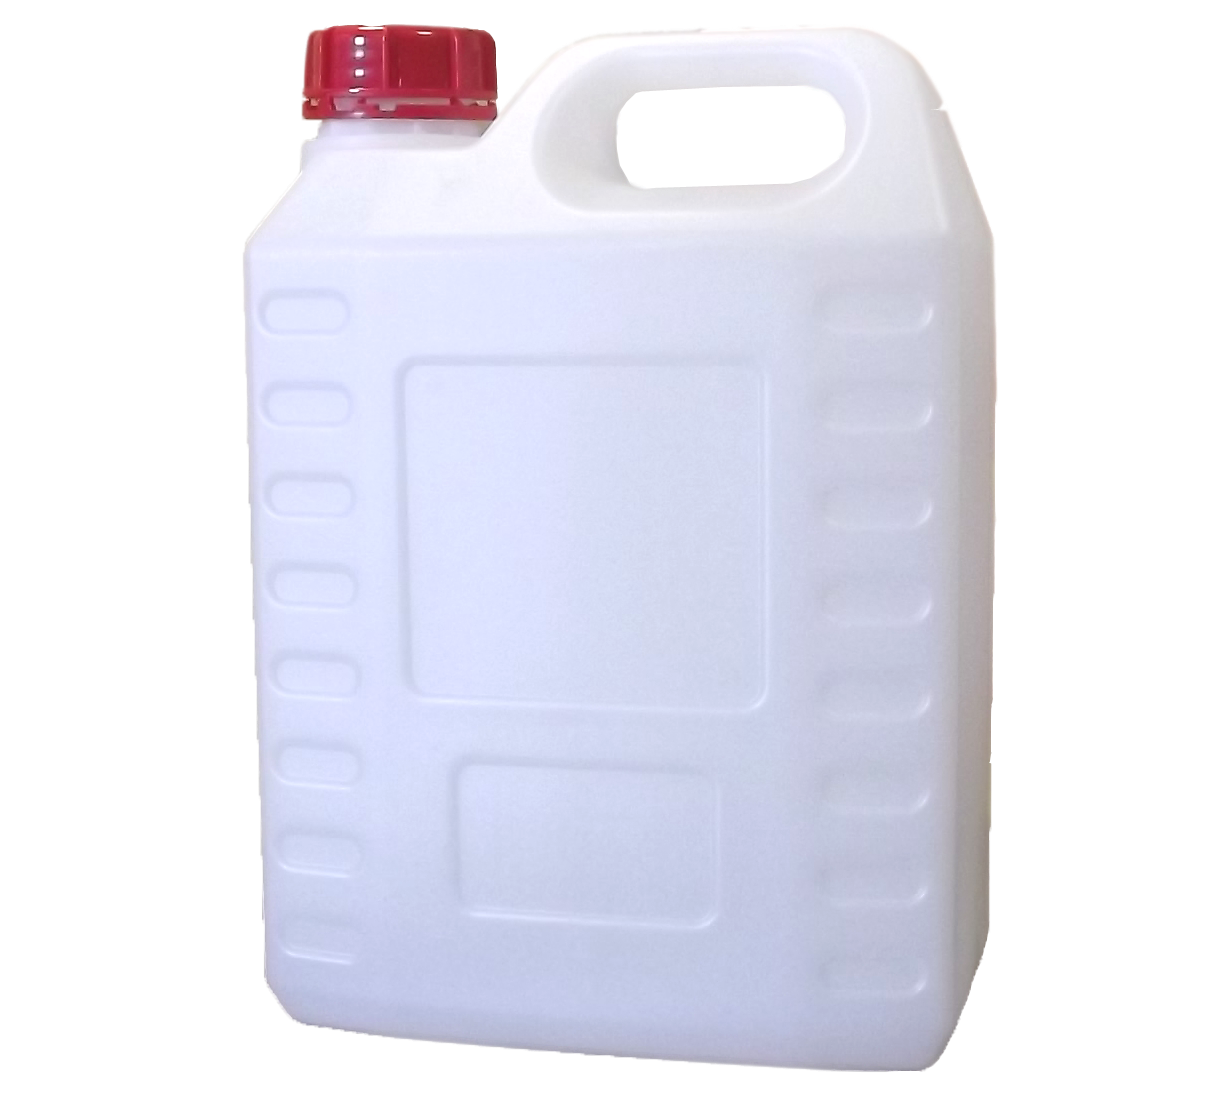 uploads jerrycan jerrycan PNG43703 3